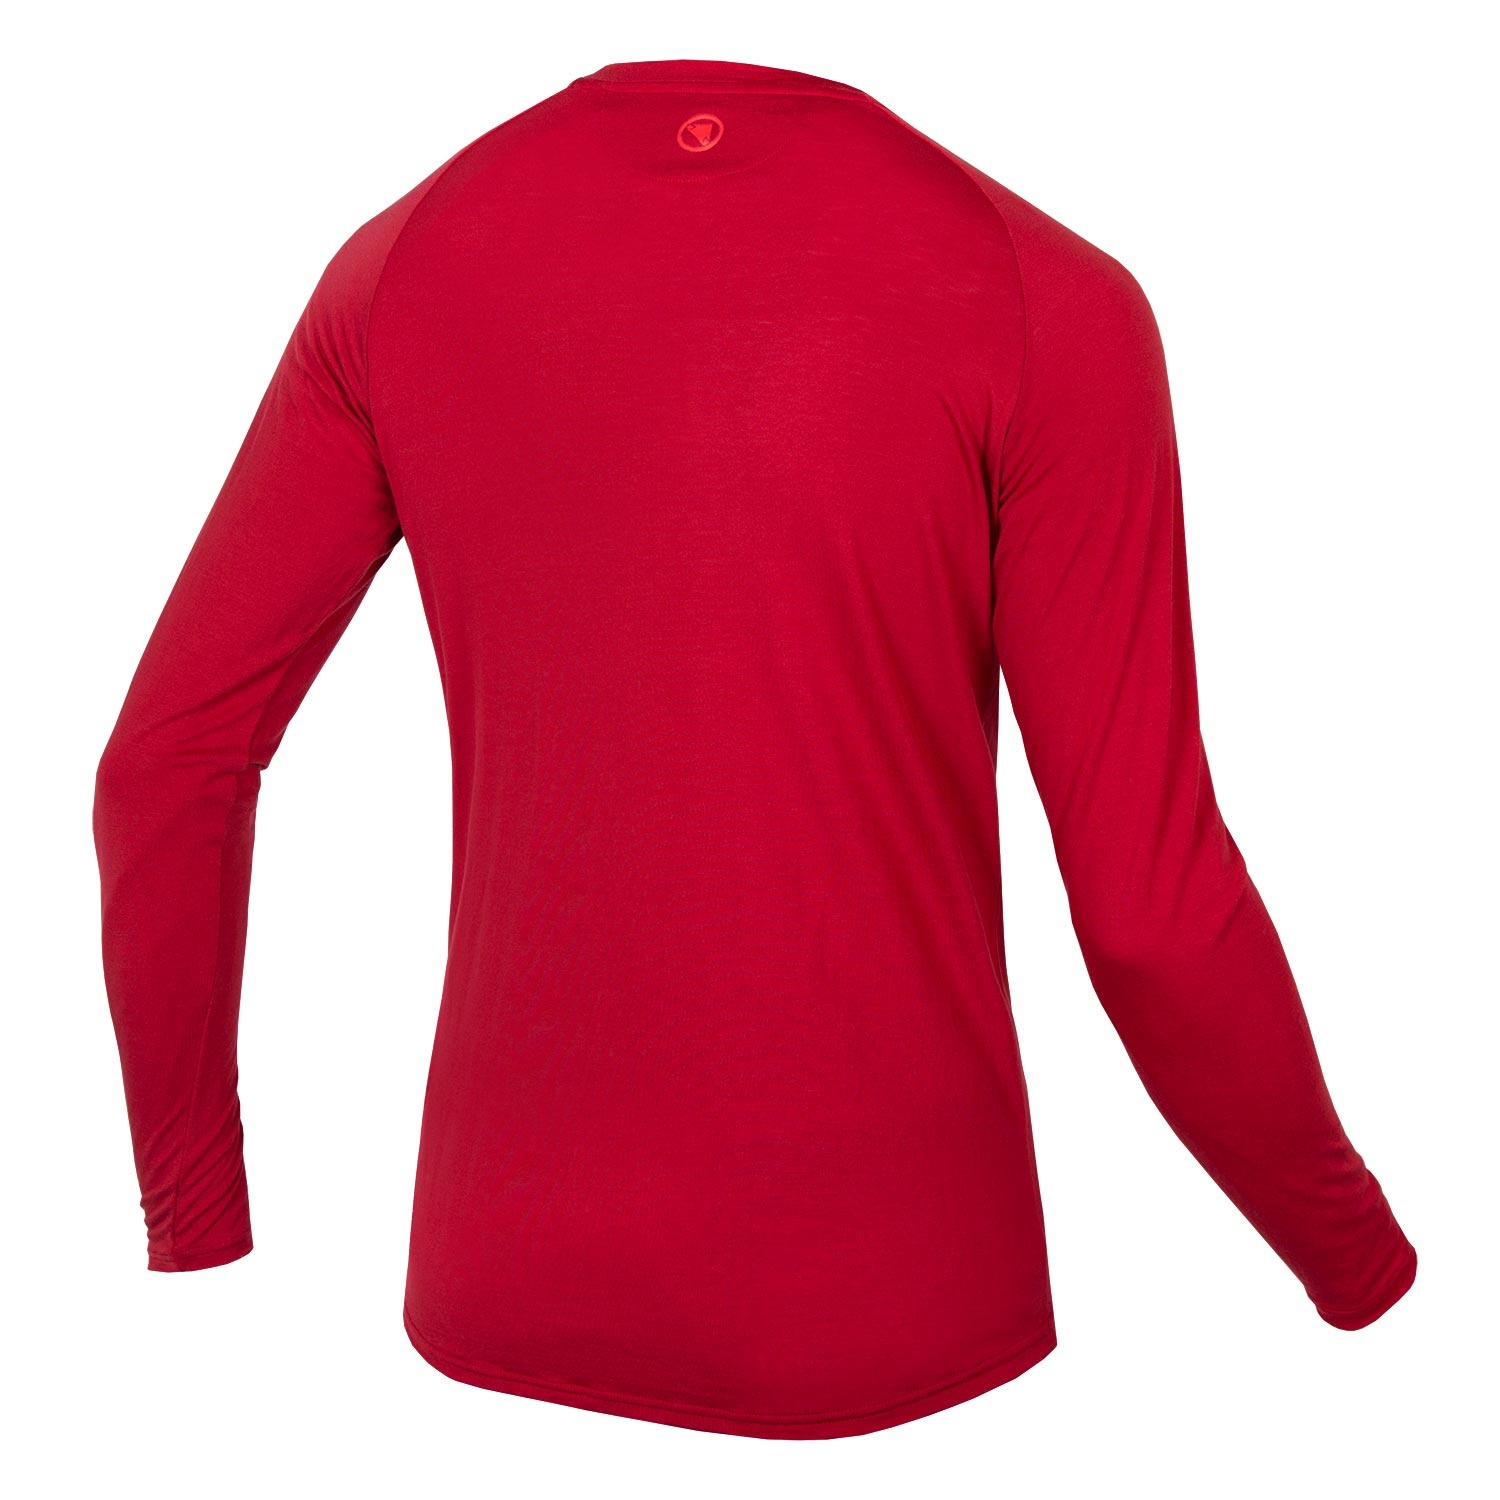 Endura BaaBaa Long Sleeve Base Layer